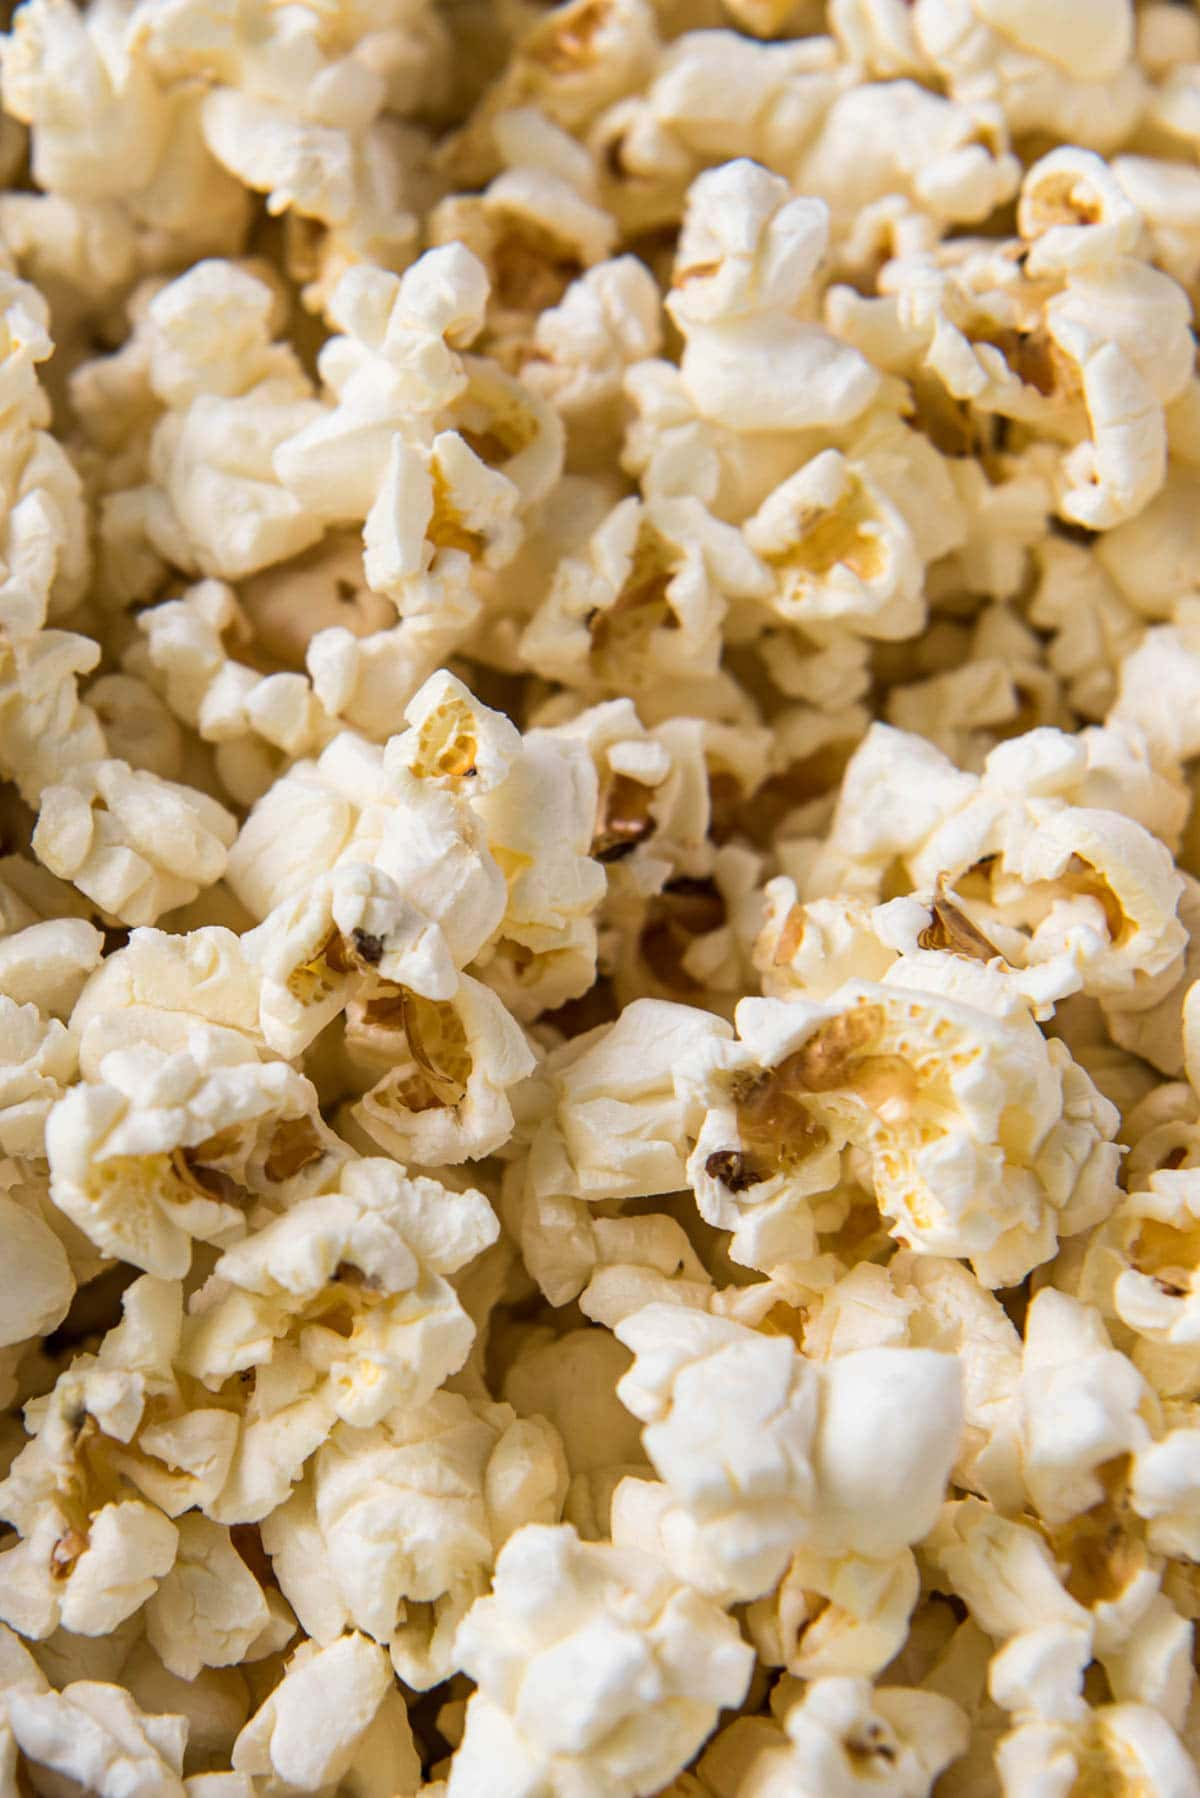 A close up of a bowl of popcorn.